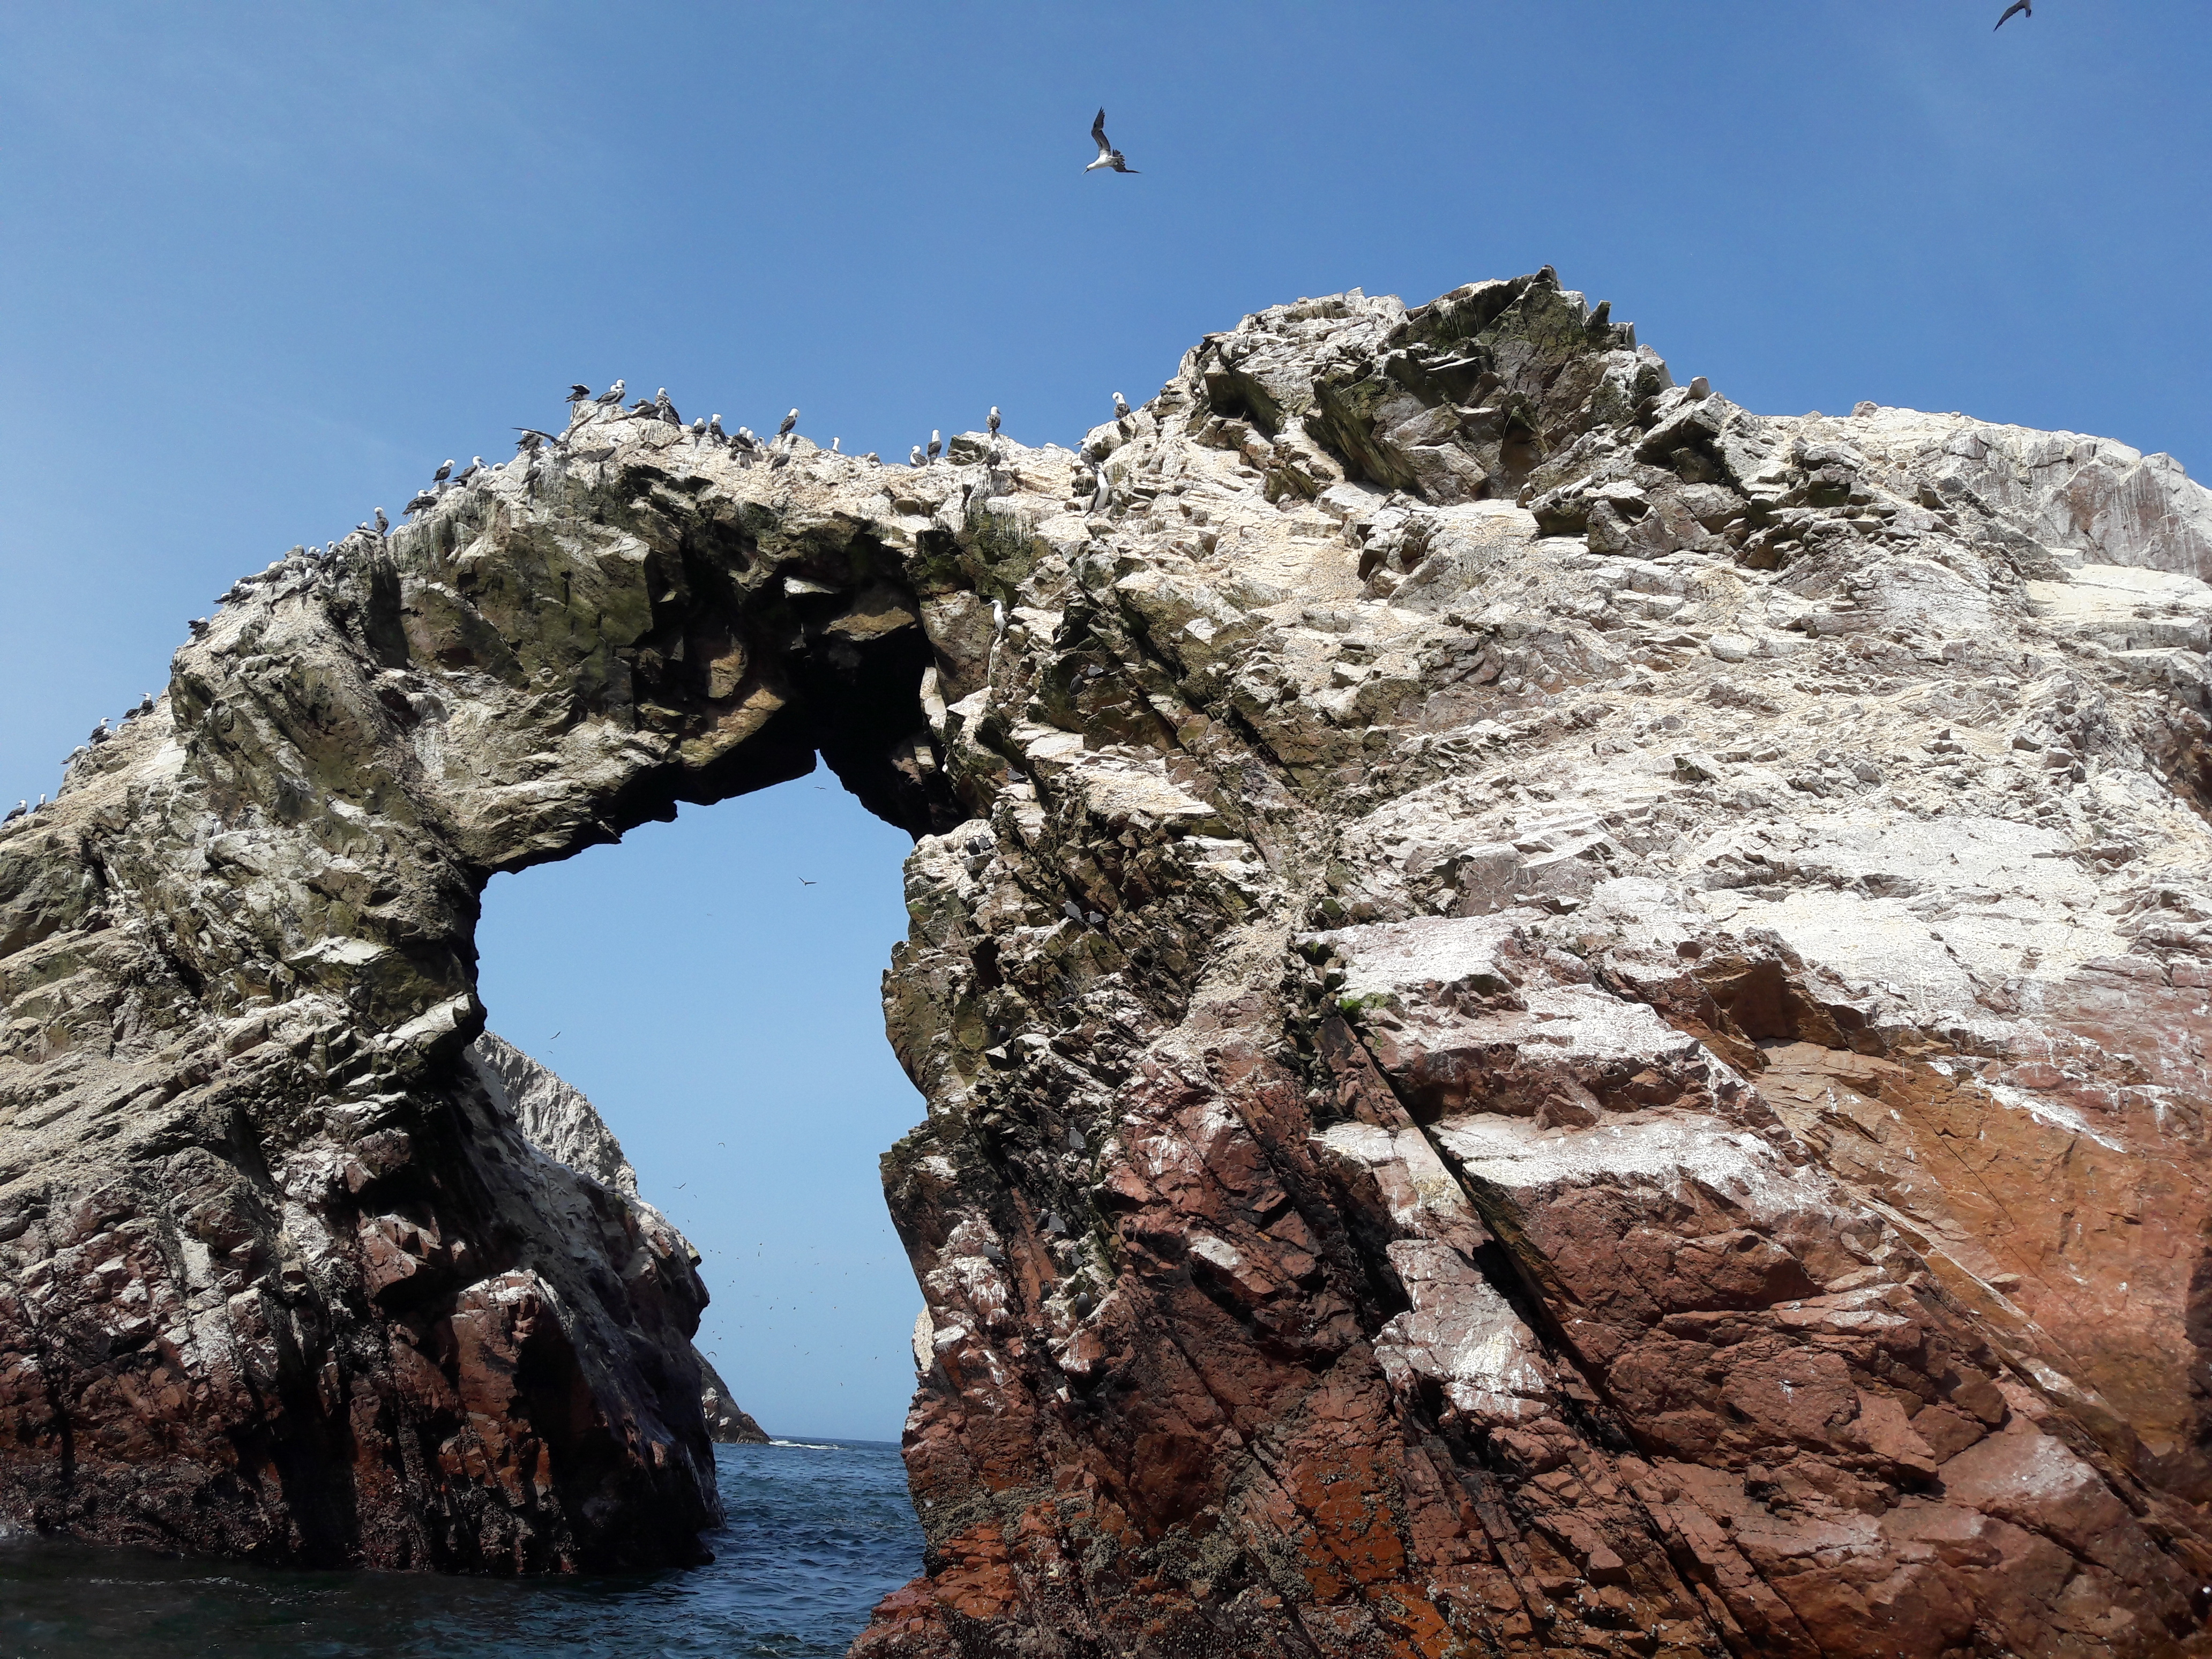 An arch shaped rock formation with seagulls